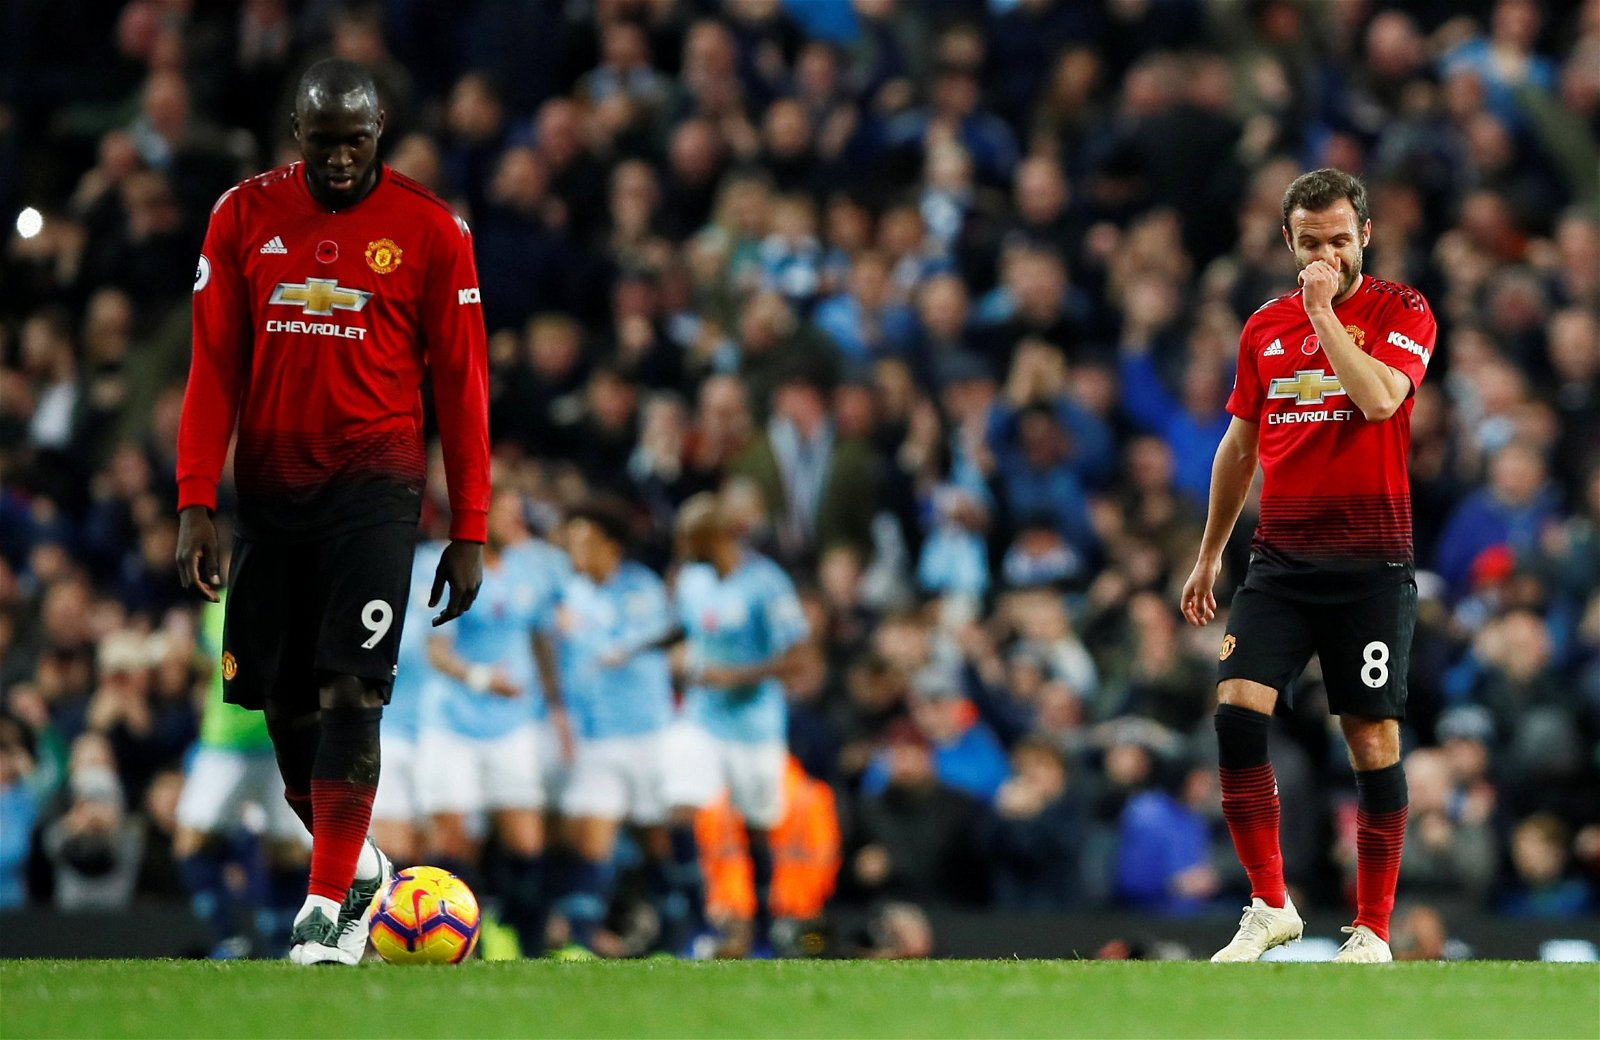 Manchester United's Romelu Lukaku and Juan Mata look dejected after Manchester City's third goal